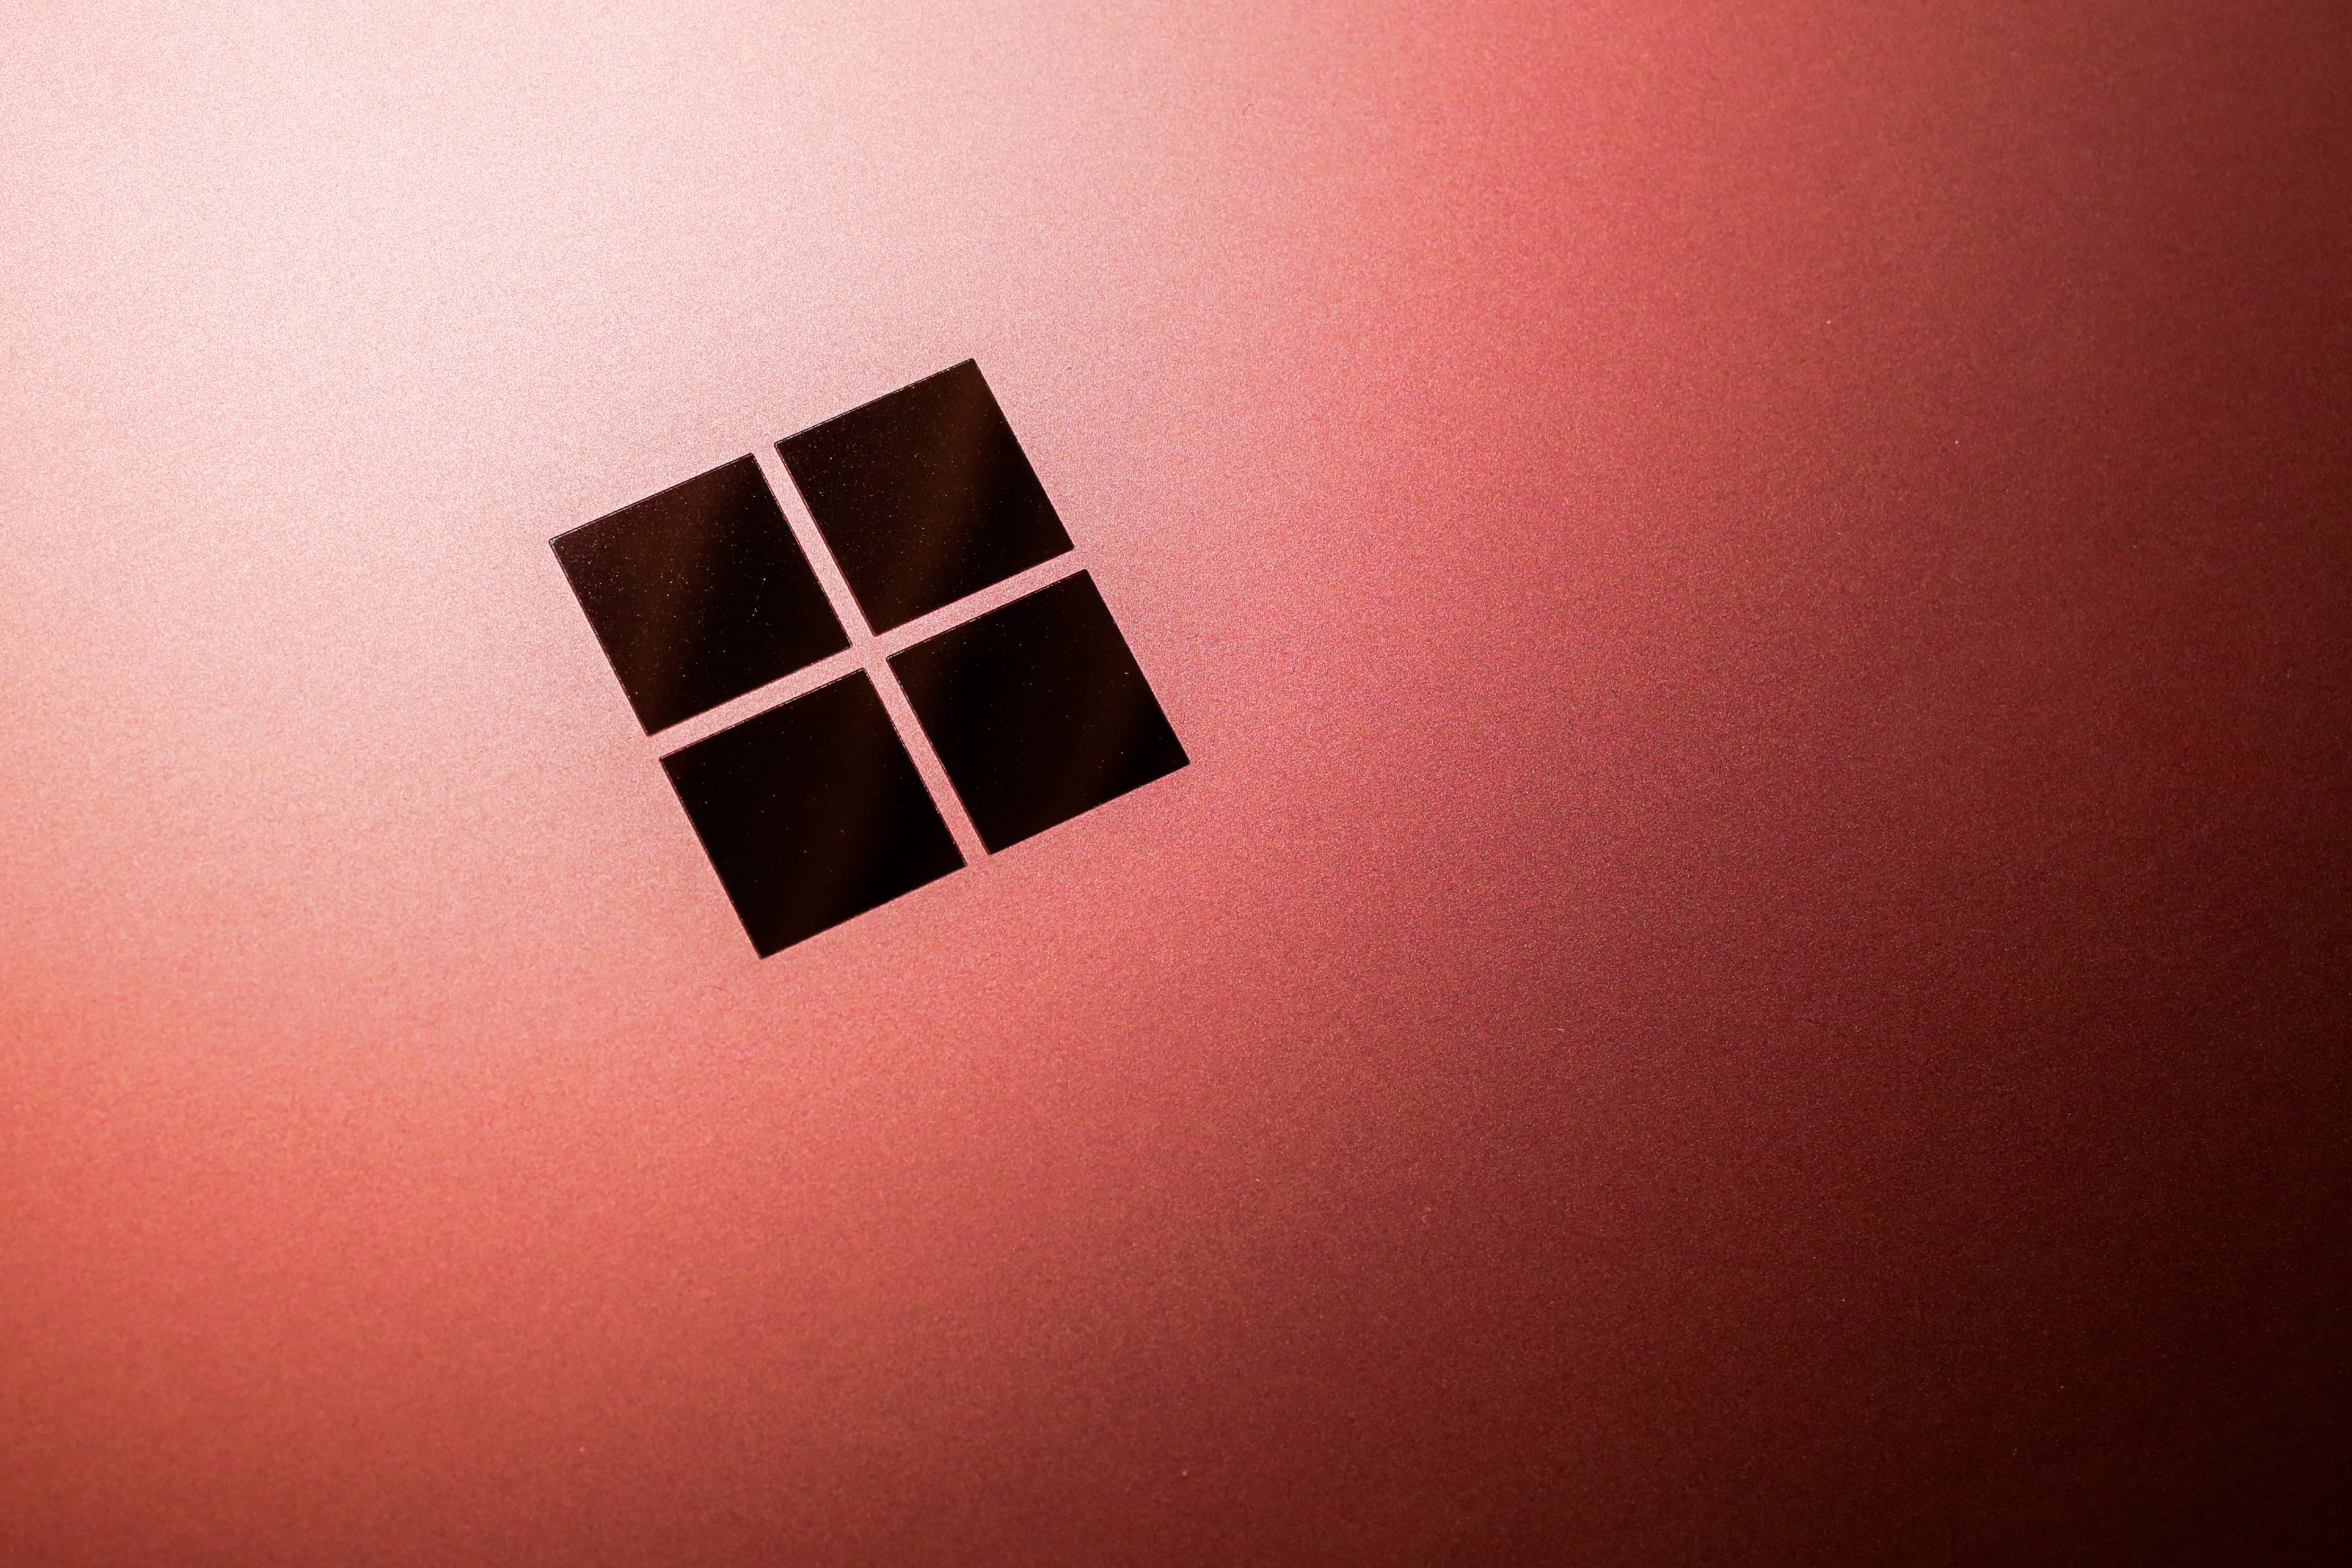 Microsoft reportedly is working on technology to turn Windows 10 PCs into smart home hubs.